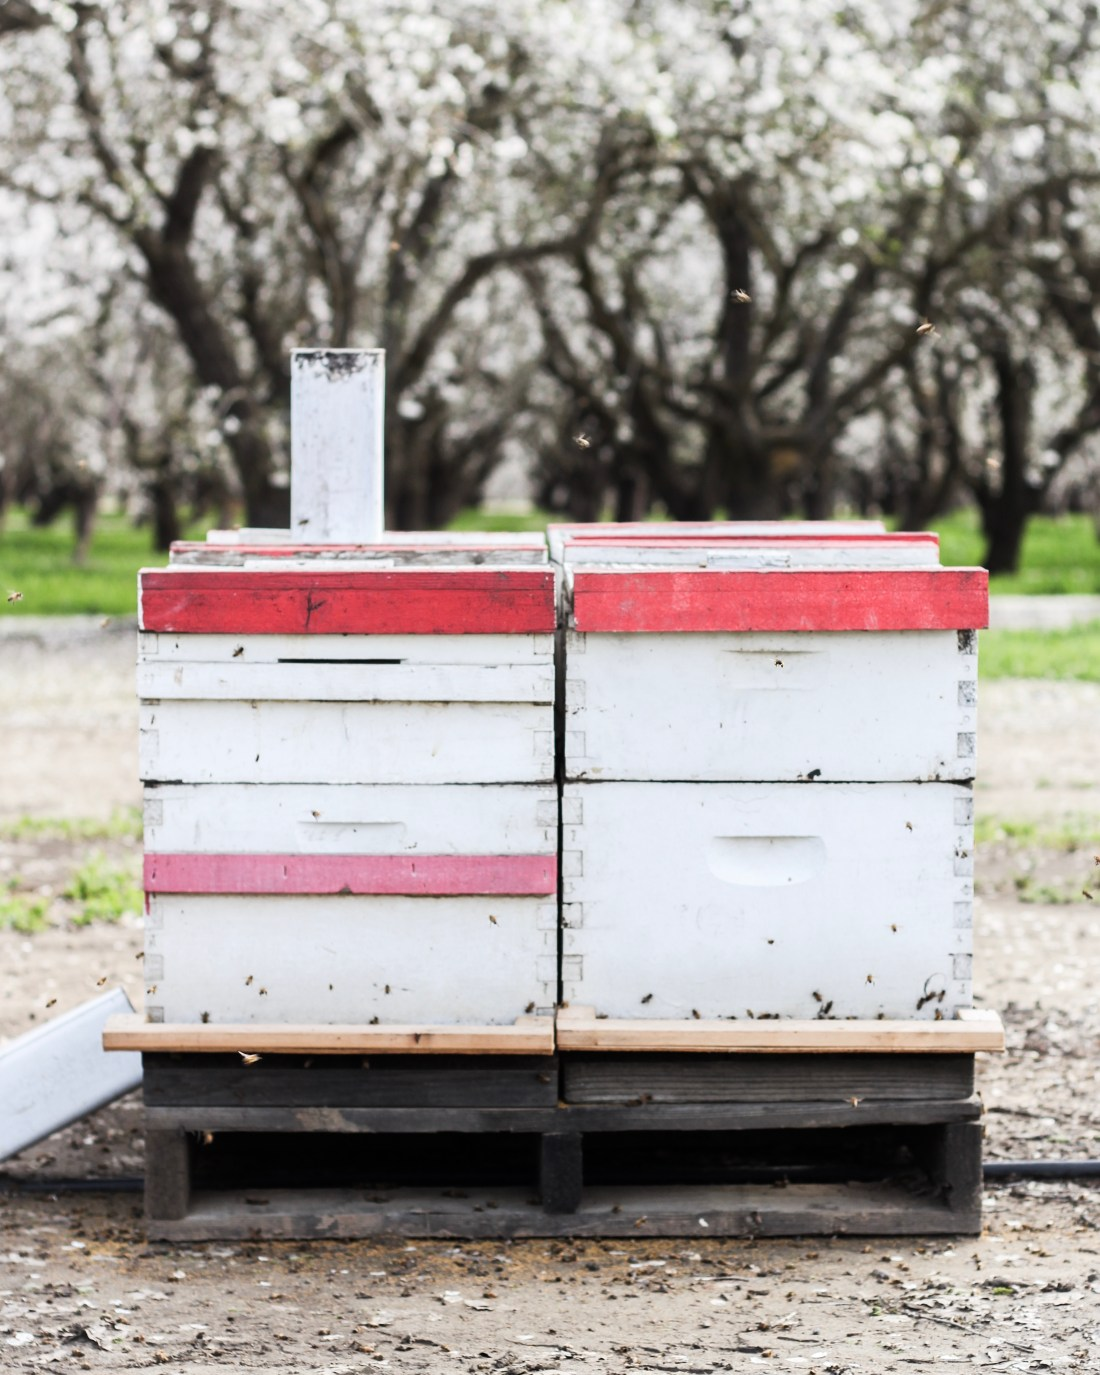 My Orchard Experience: The Top 3 Things I Learned About Almonds in Sacramento!